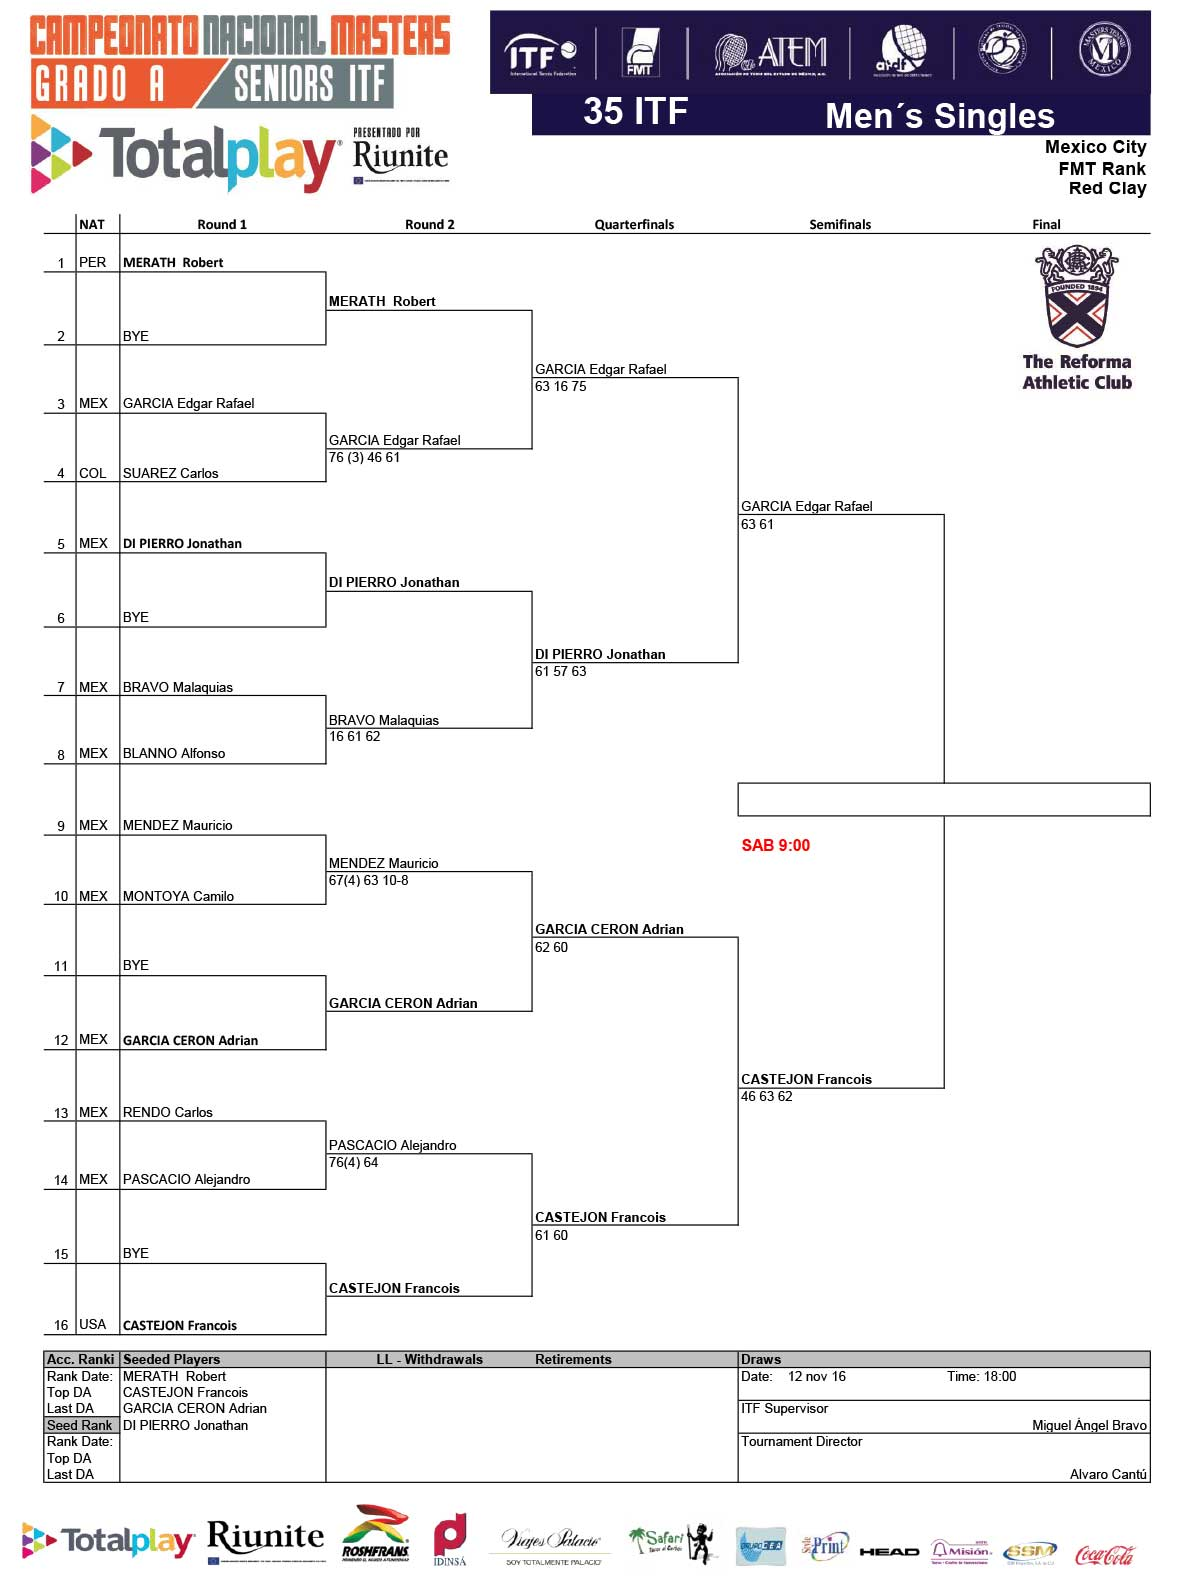 1-draws-itf-2016-copy-1